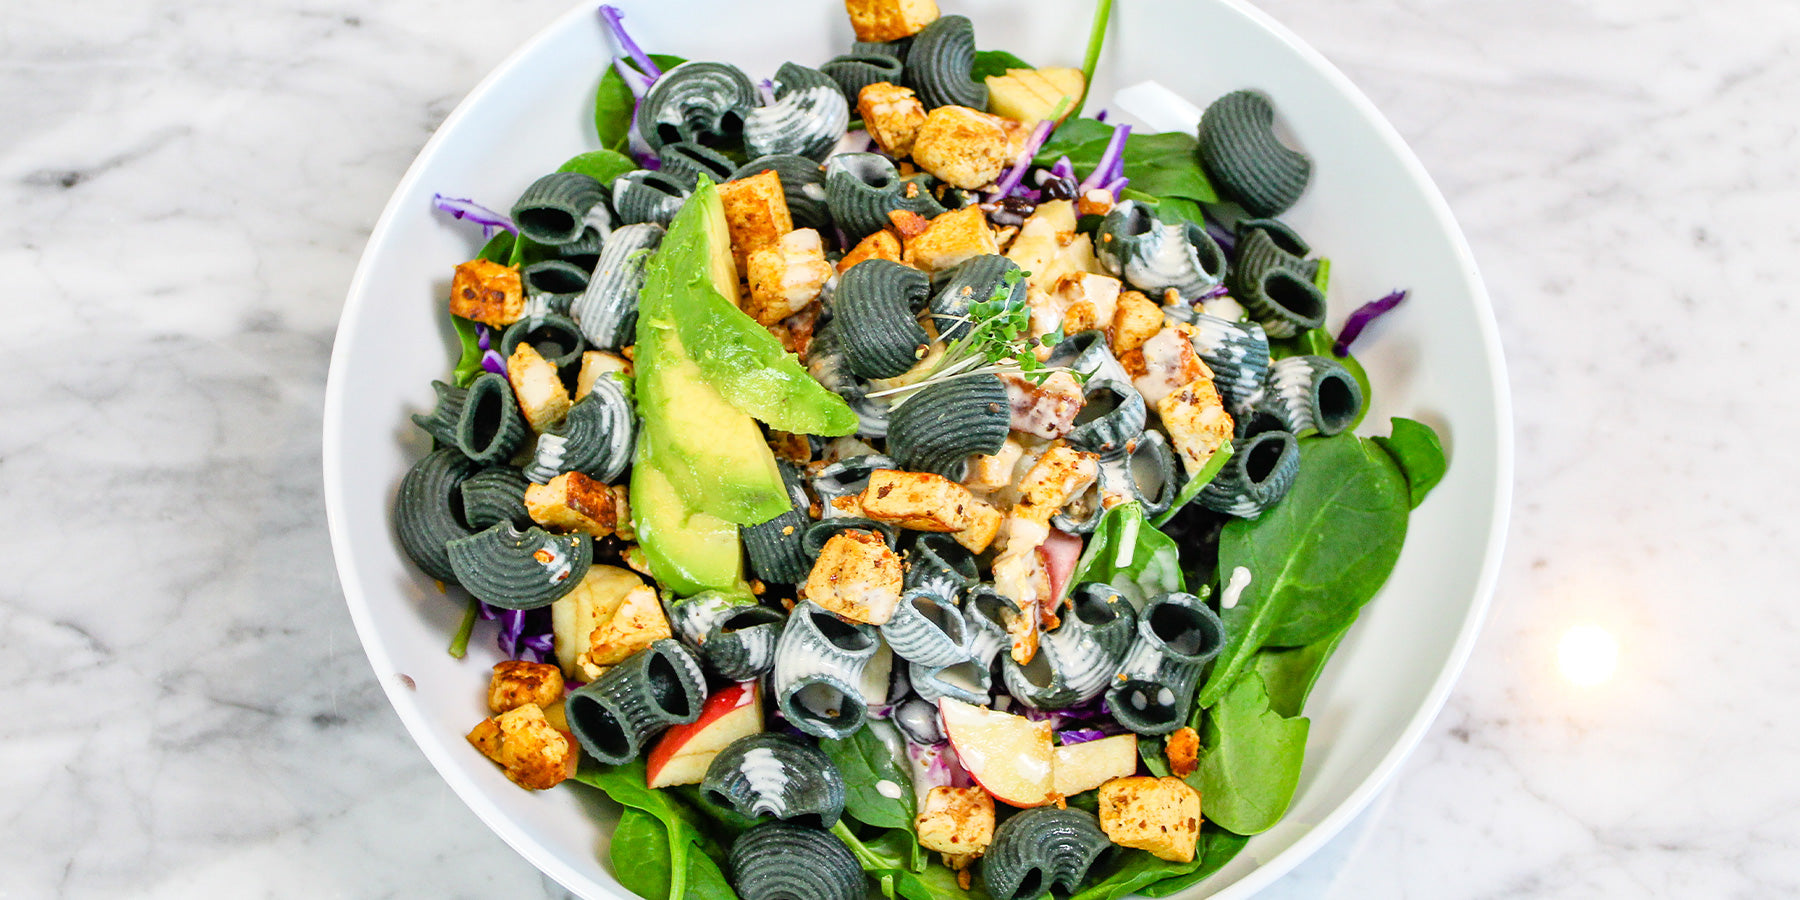 White Corn and Spirulina Pipe Rigate Salad with Crispy Tofu and Yogurt Vinaigrette